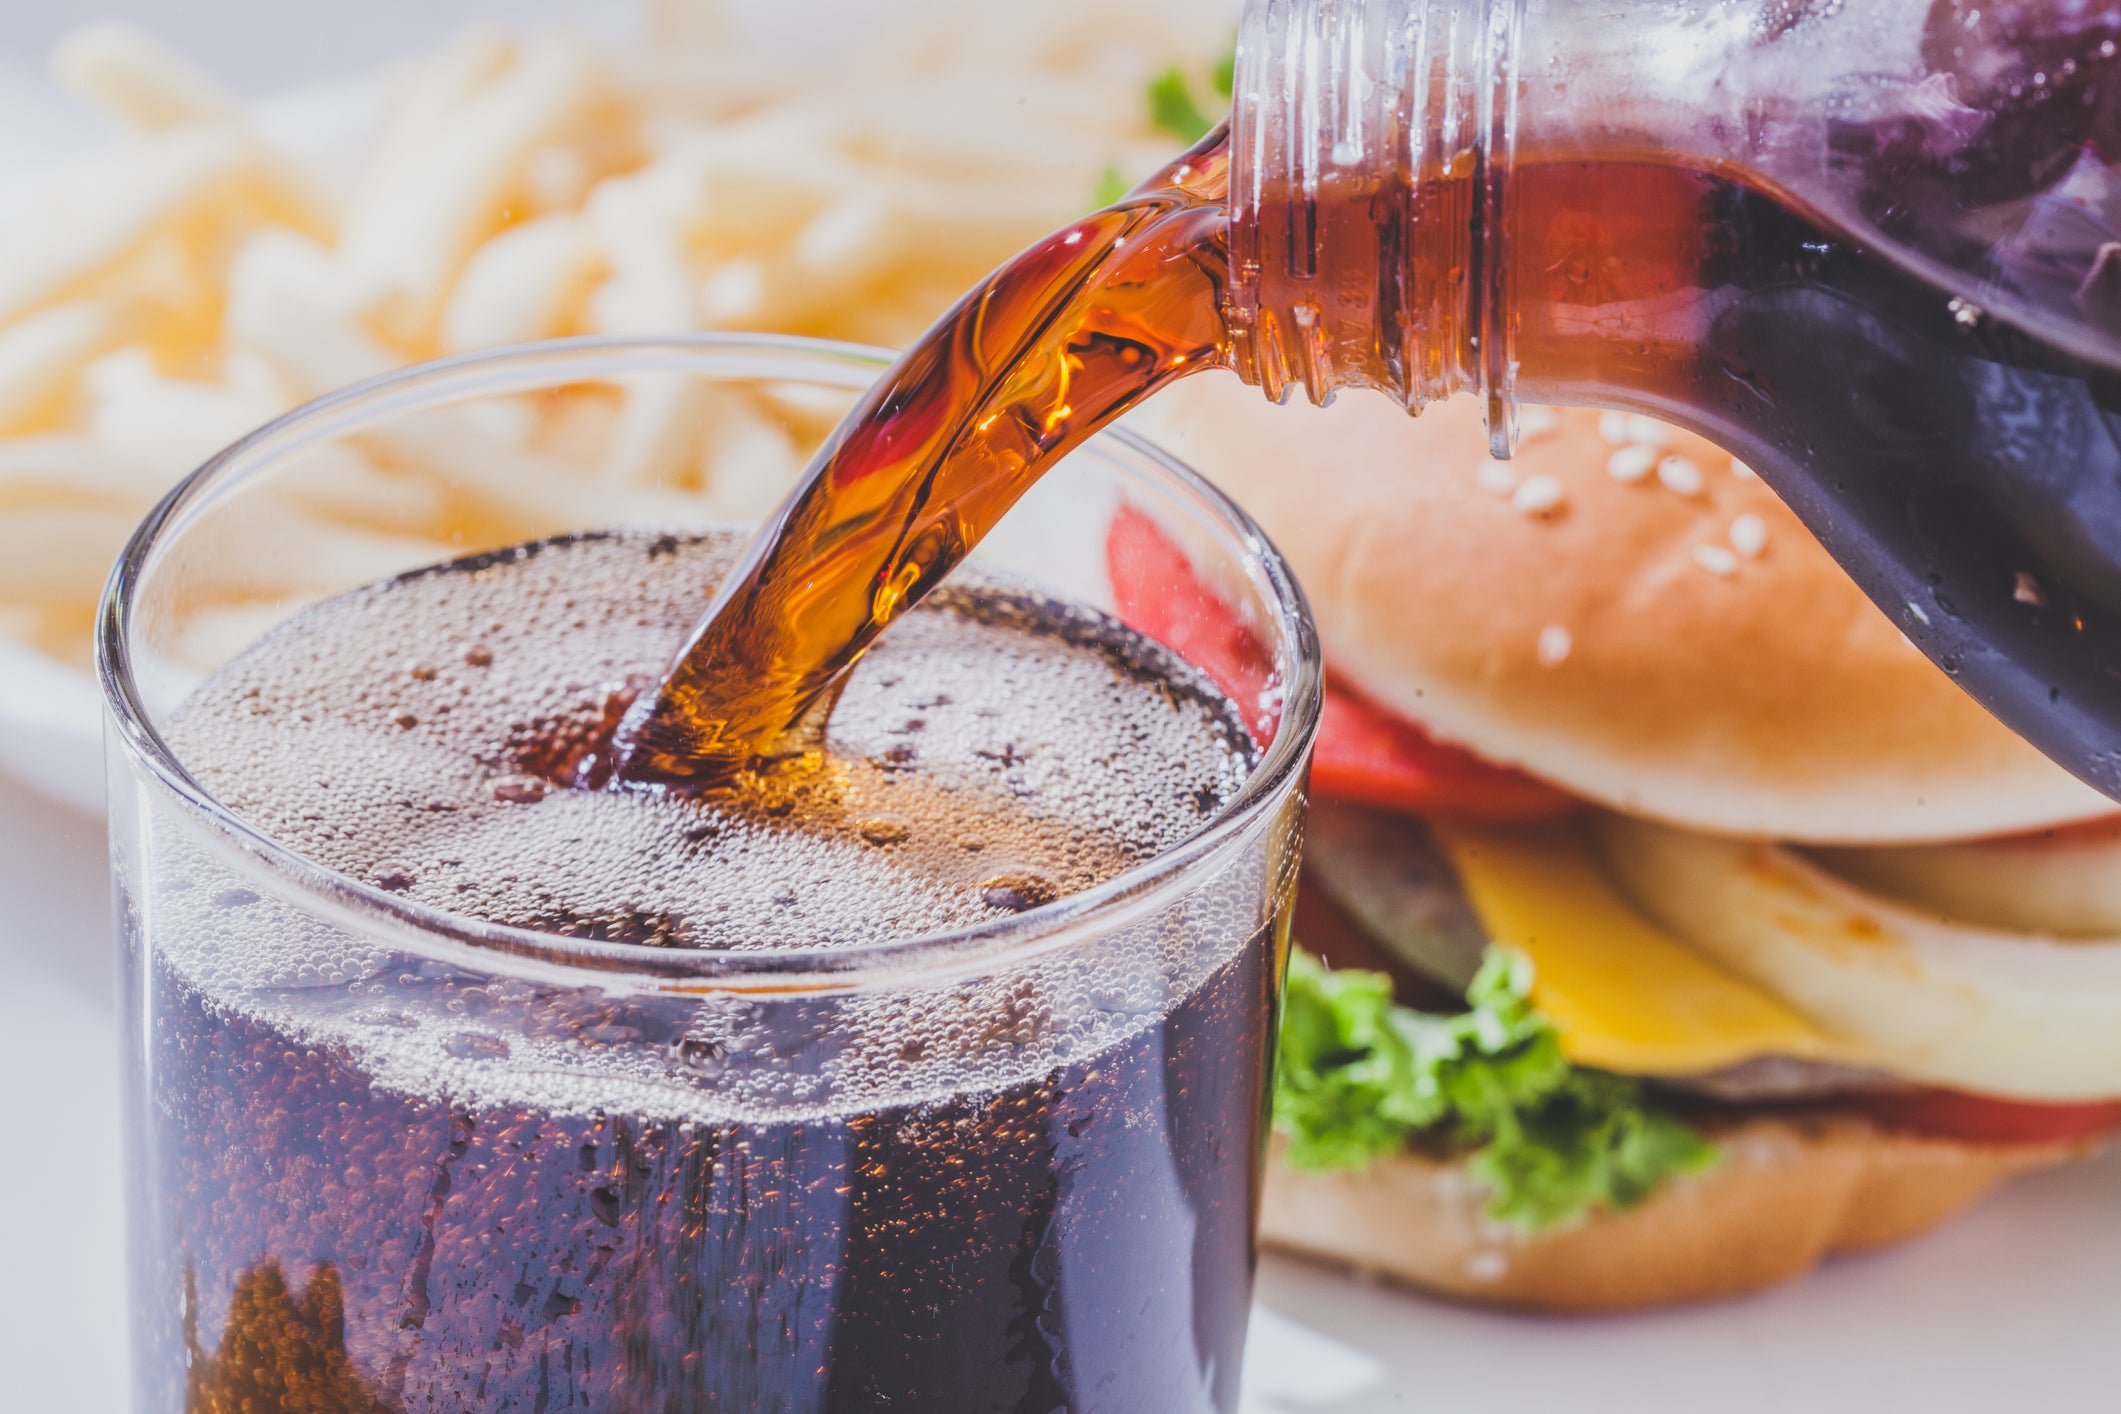 Better Buy: Mcdonald's Vs. Coca Cola @themotleyfool #stocks $mcd $ko photo